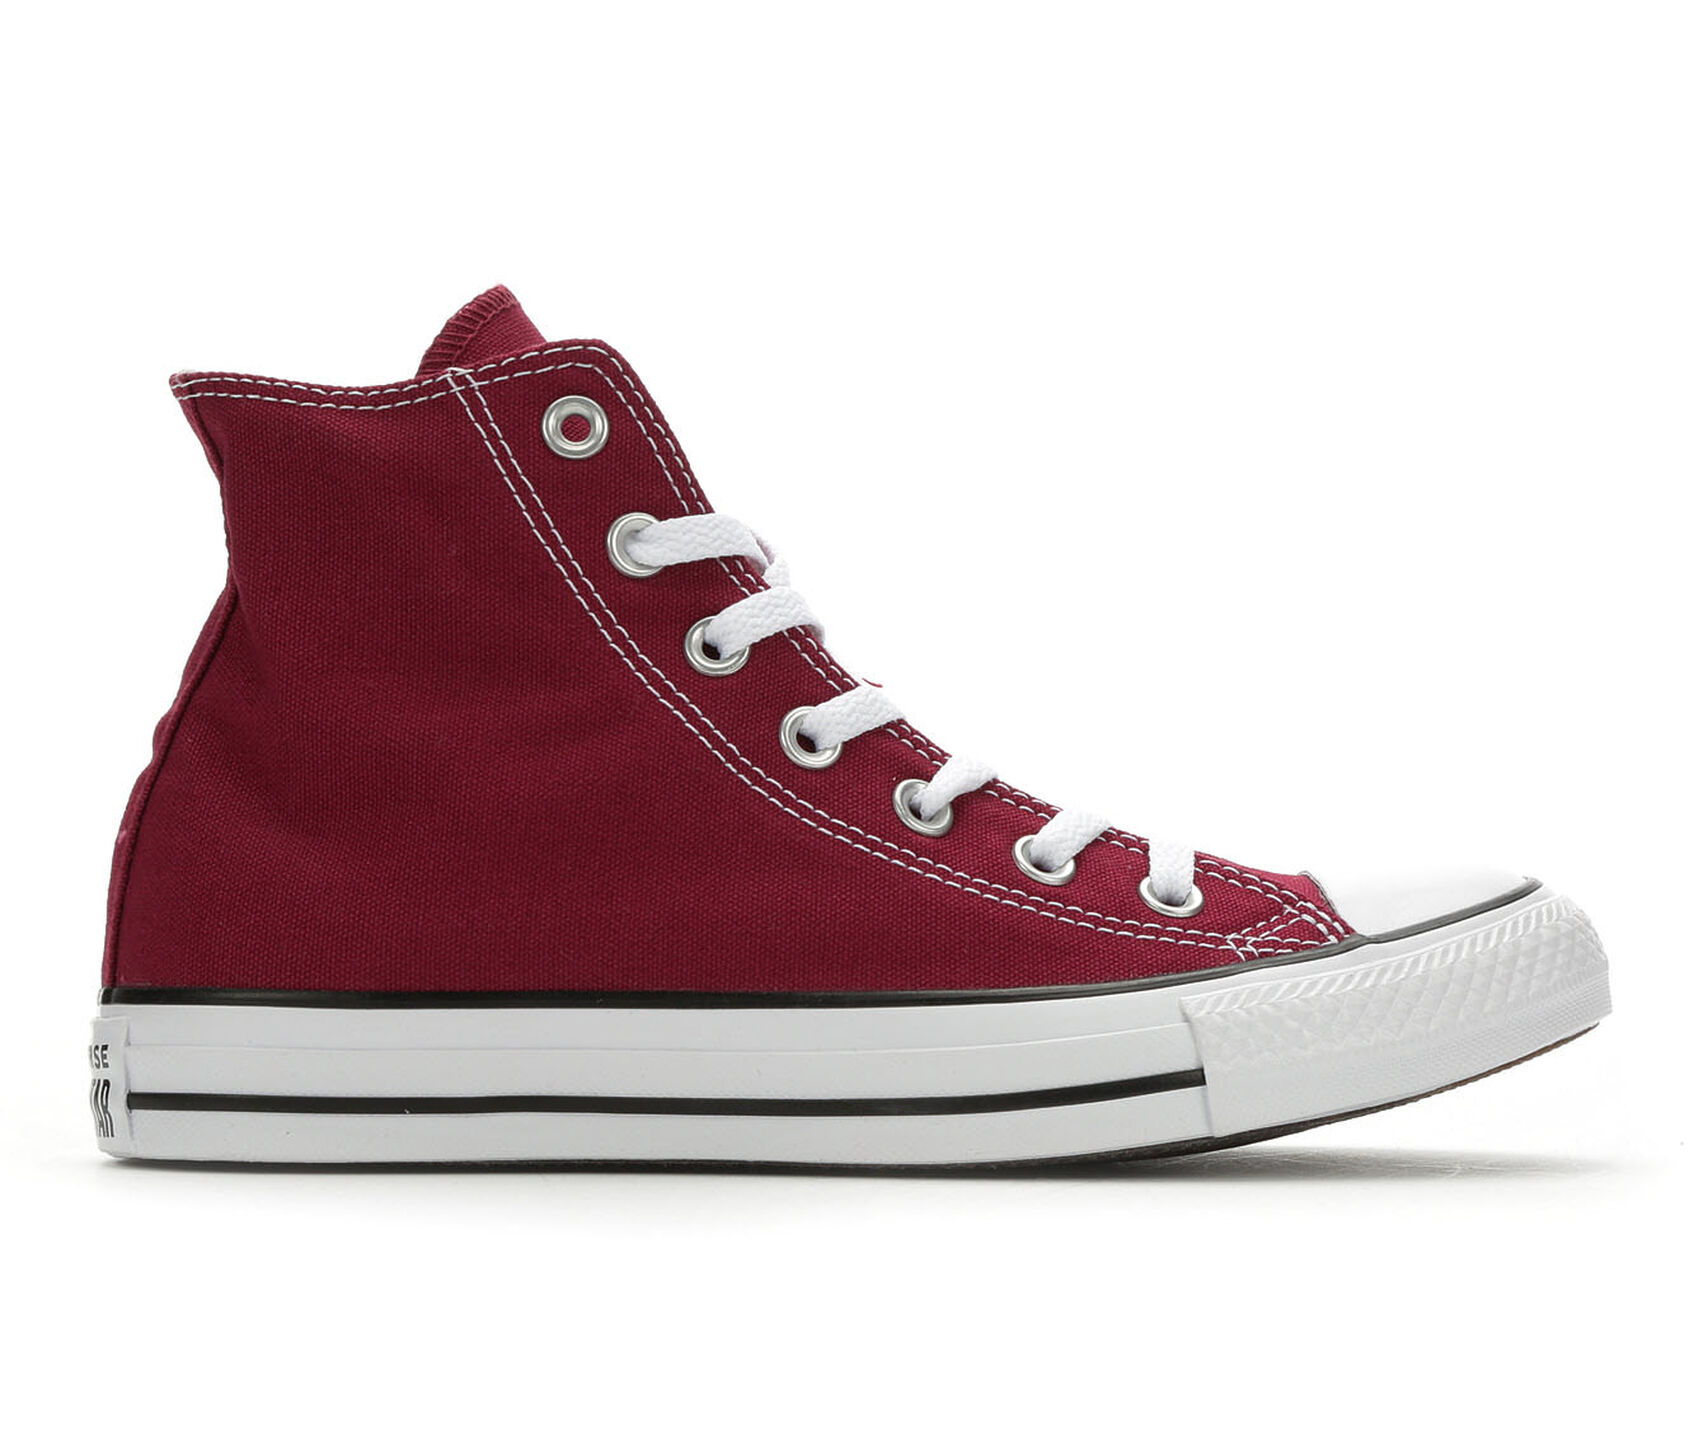 56a6a23f4440 ... Converse Chuck Taylor All Star Seasonal Hi High Top Sneakers. Previous